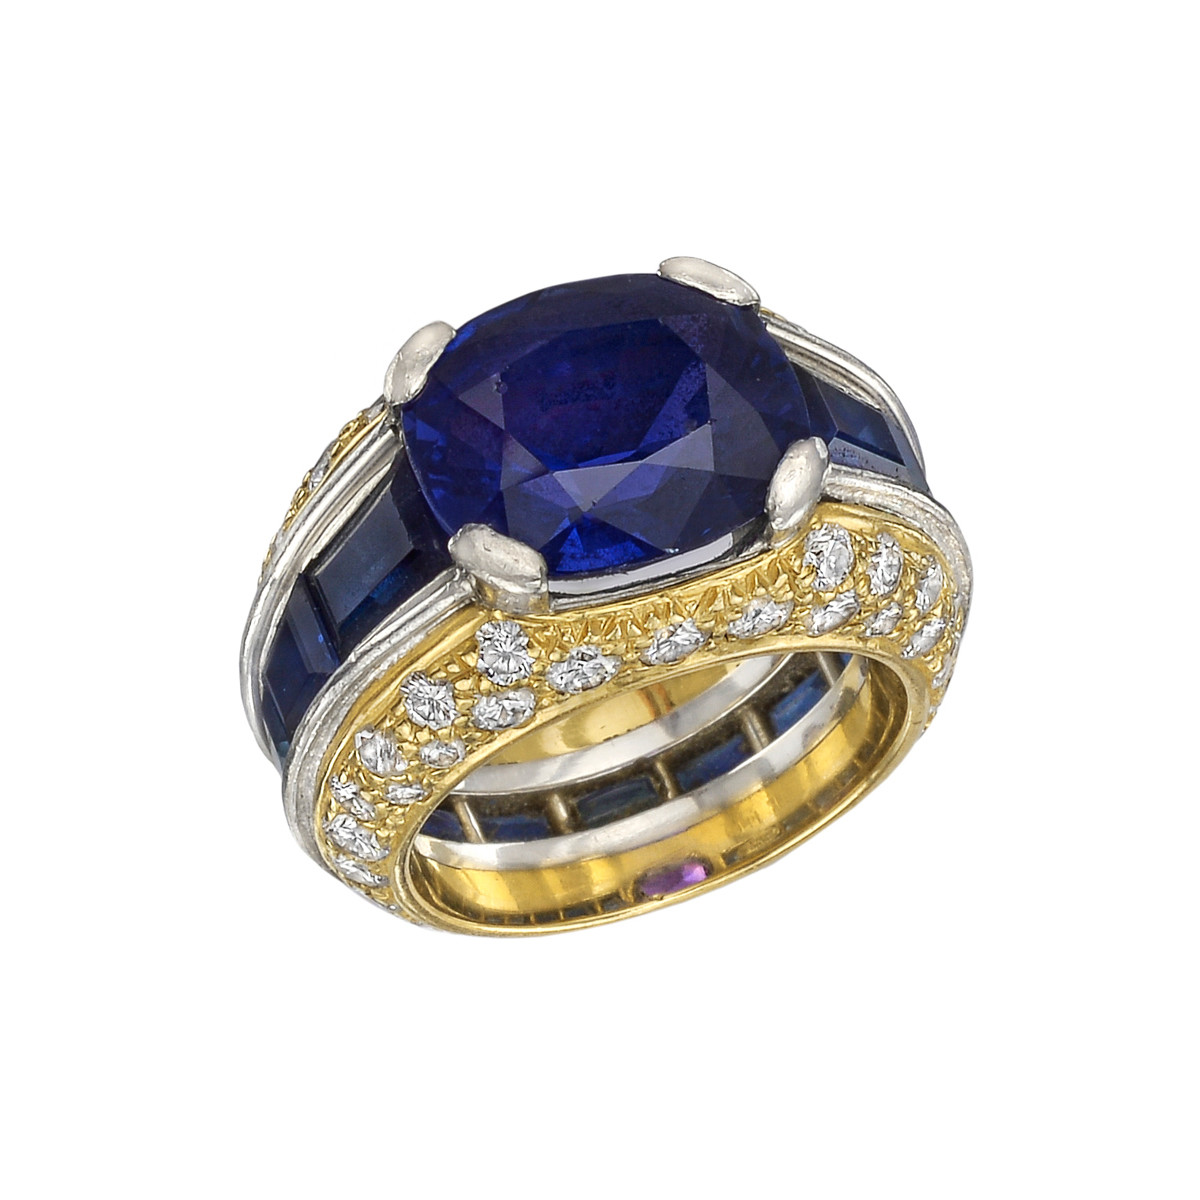 5.15ct Sapphire & Diamond Cocktail Ring